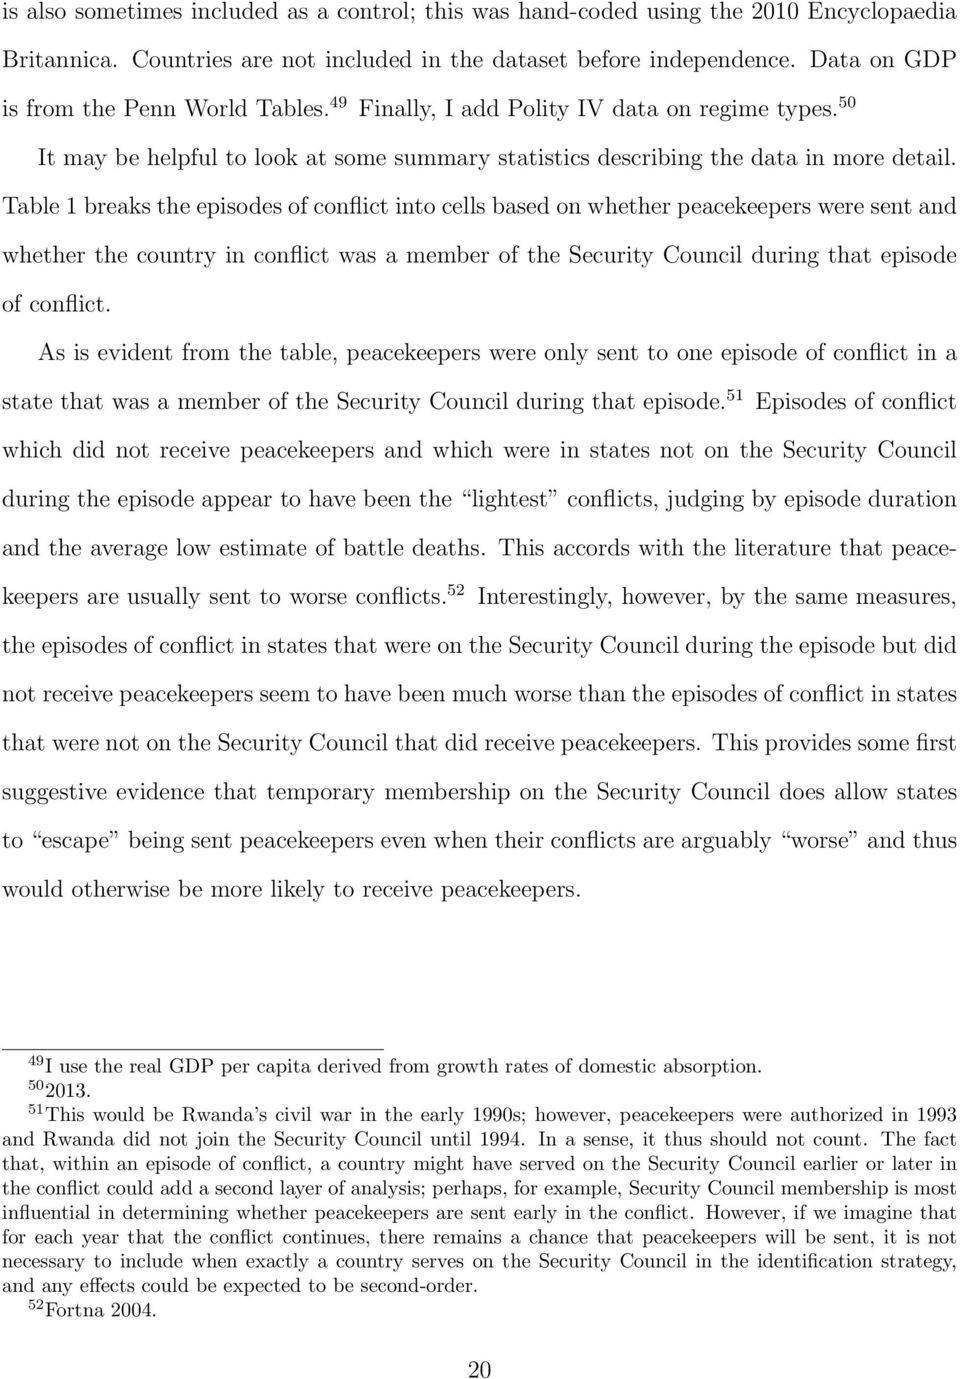 Table 1 breaks the episodes of conflict into cells based on whether peacekeepers were sent and whether the country in conflict was a member of the Security Council during that episode of conflict.